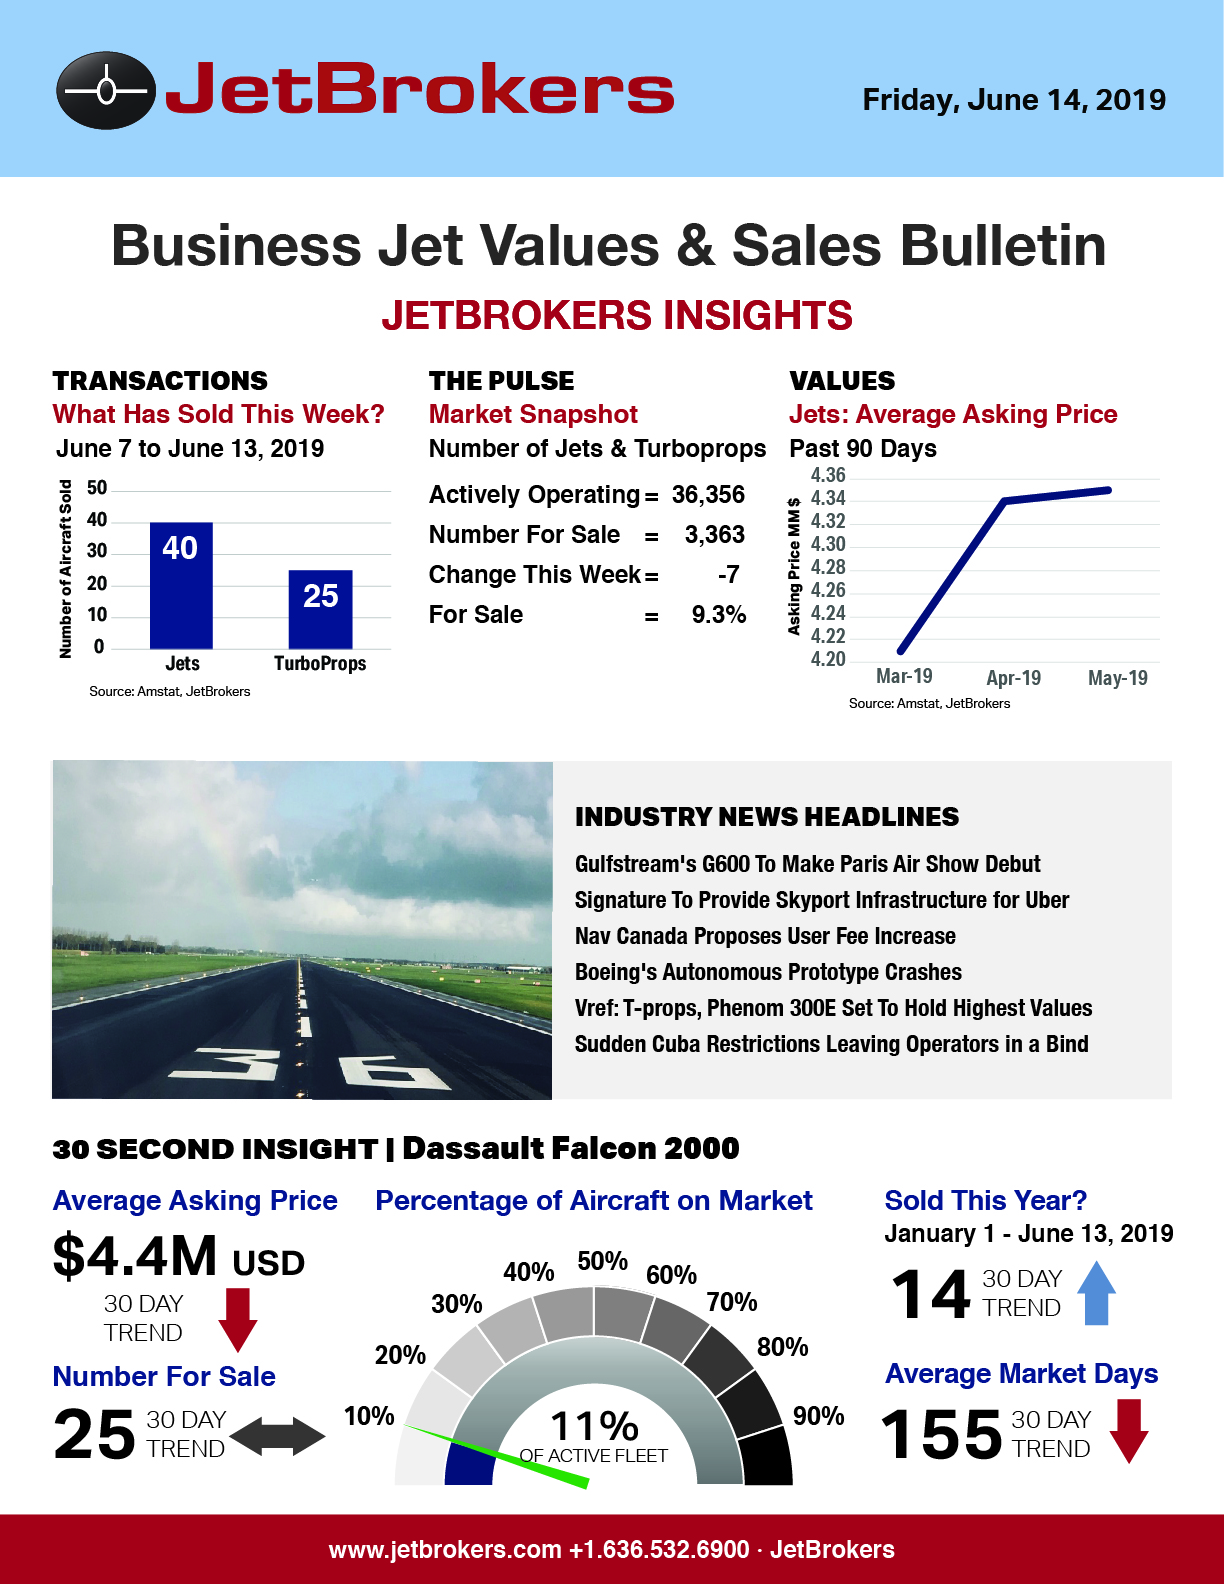 BizAv Market News and Research by JetBrokers